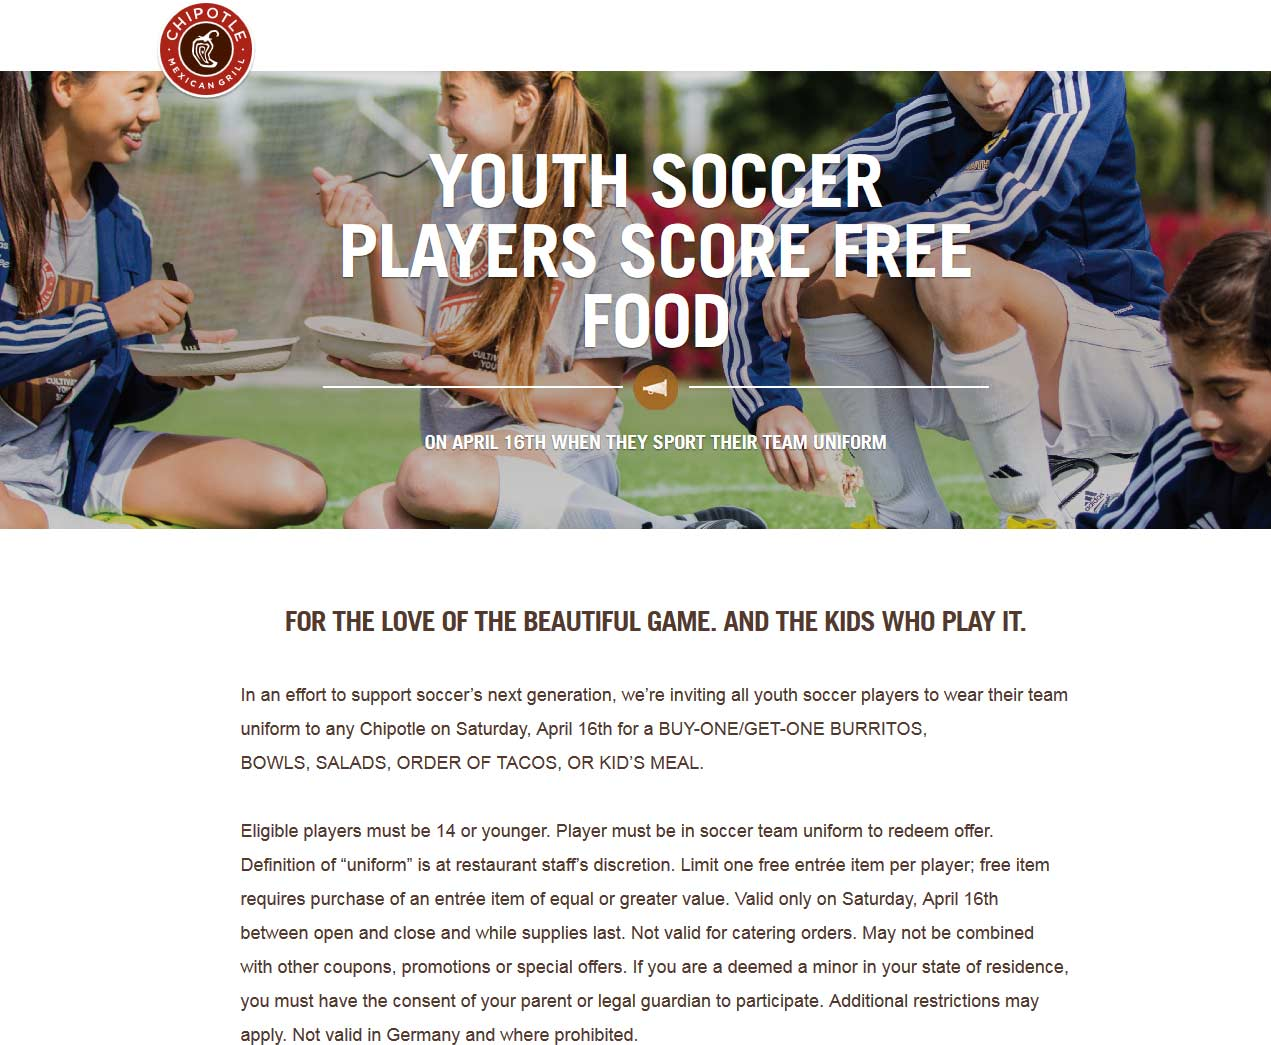 Chipotle Coupon February 2017 Youth soccer players in uniform get a second meal free the 16th at Chipotle